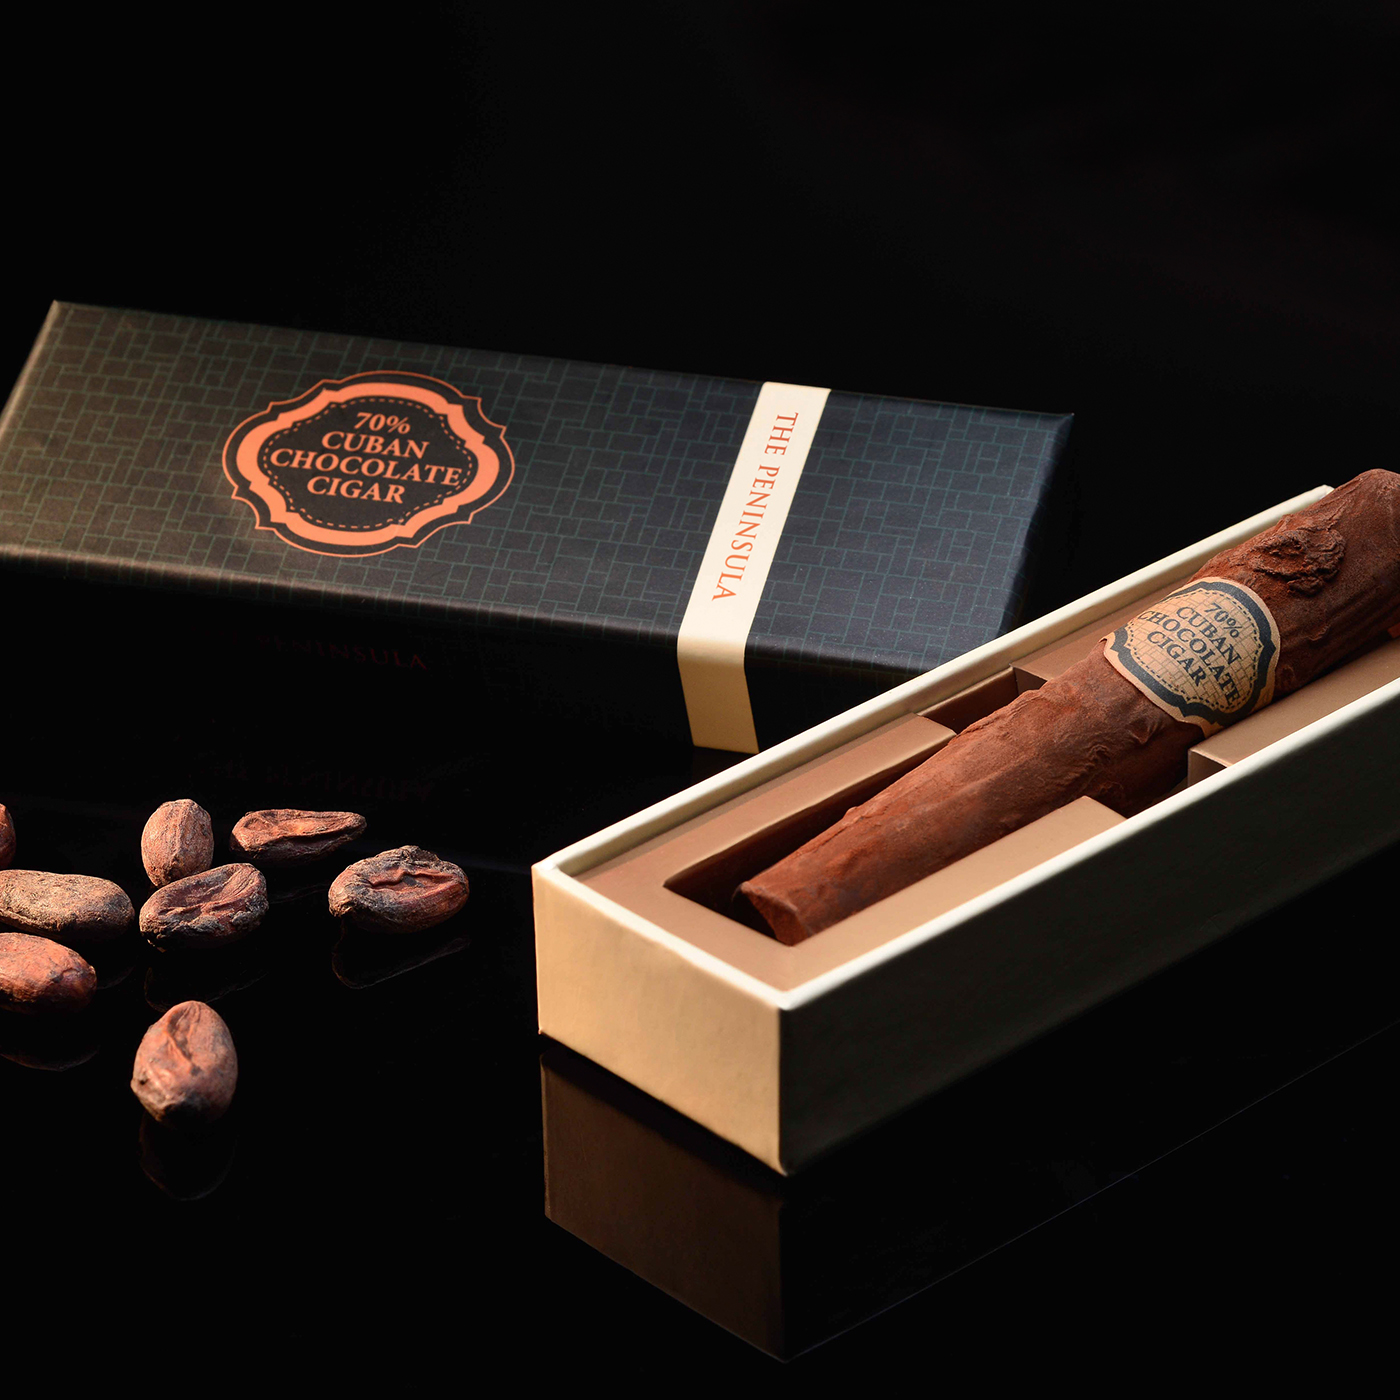 Artisanal Chocolate Cigar